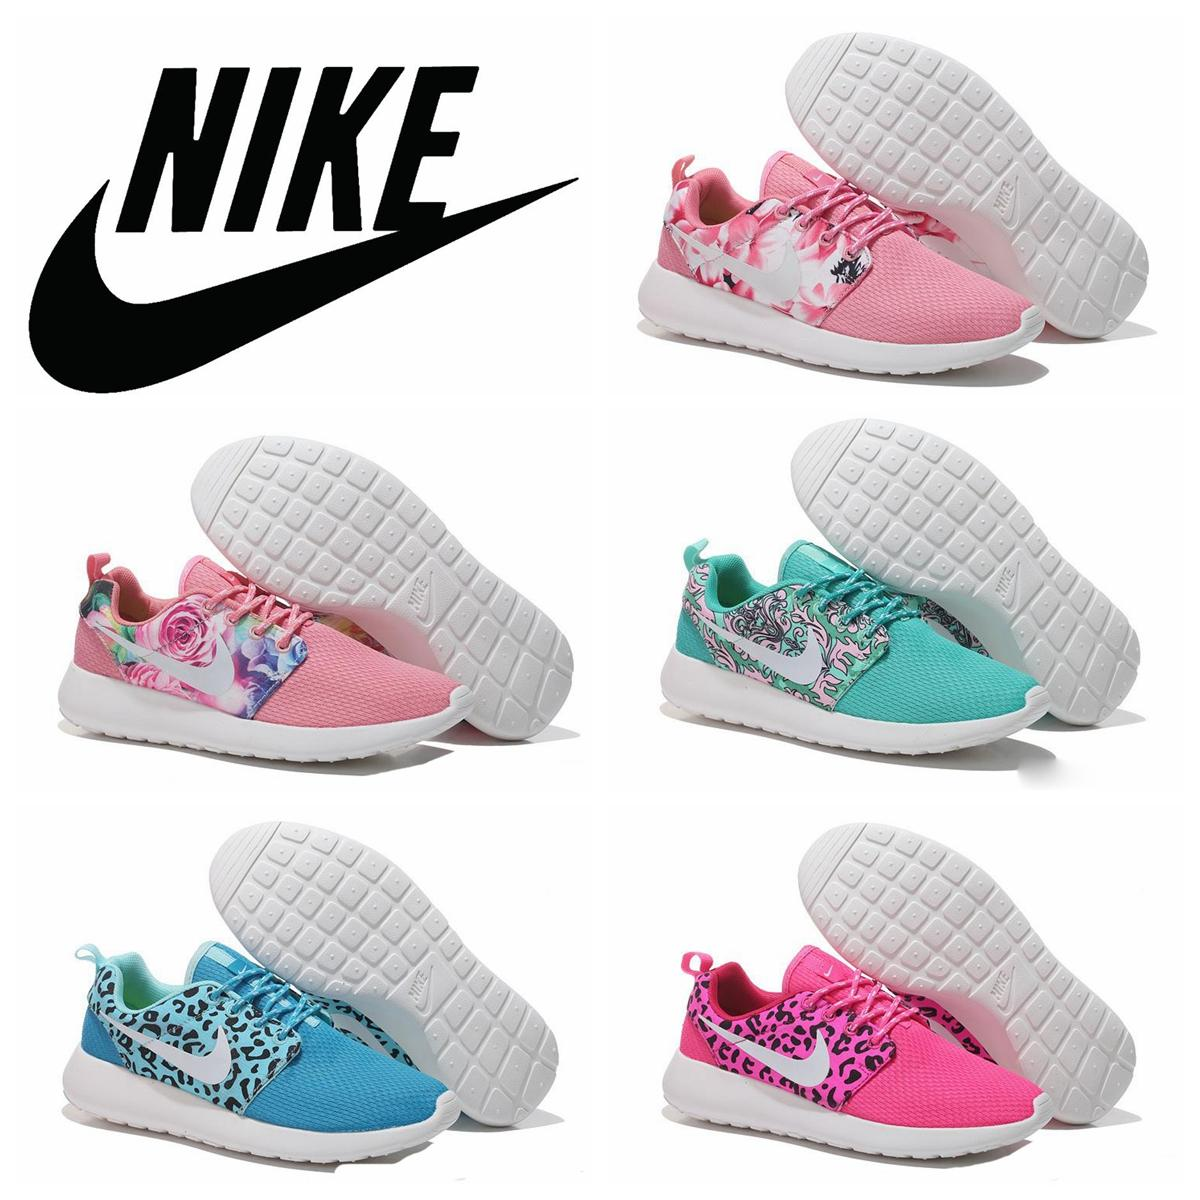 Nike Rosherun Roshe Run Floral Flower Women Running Shoes Nike Rosherun Londo